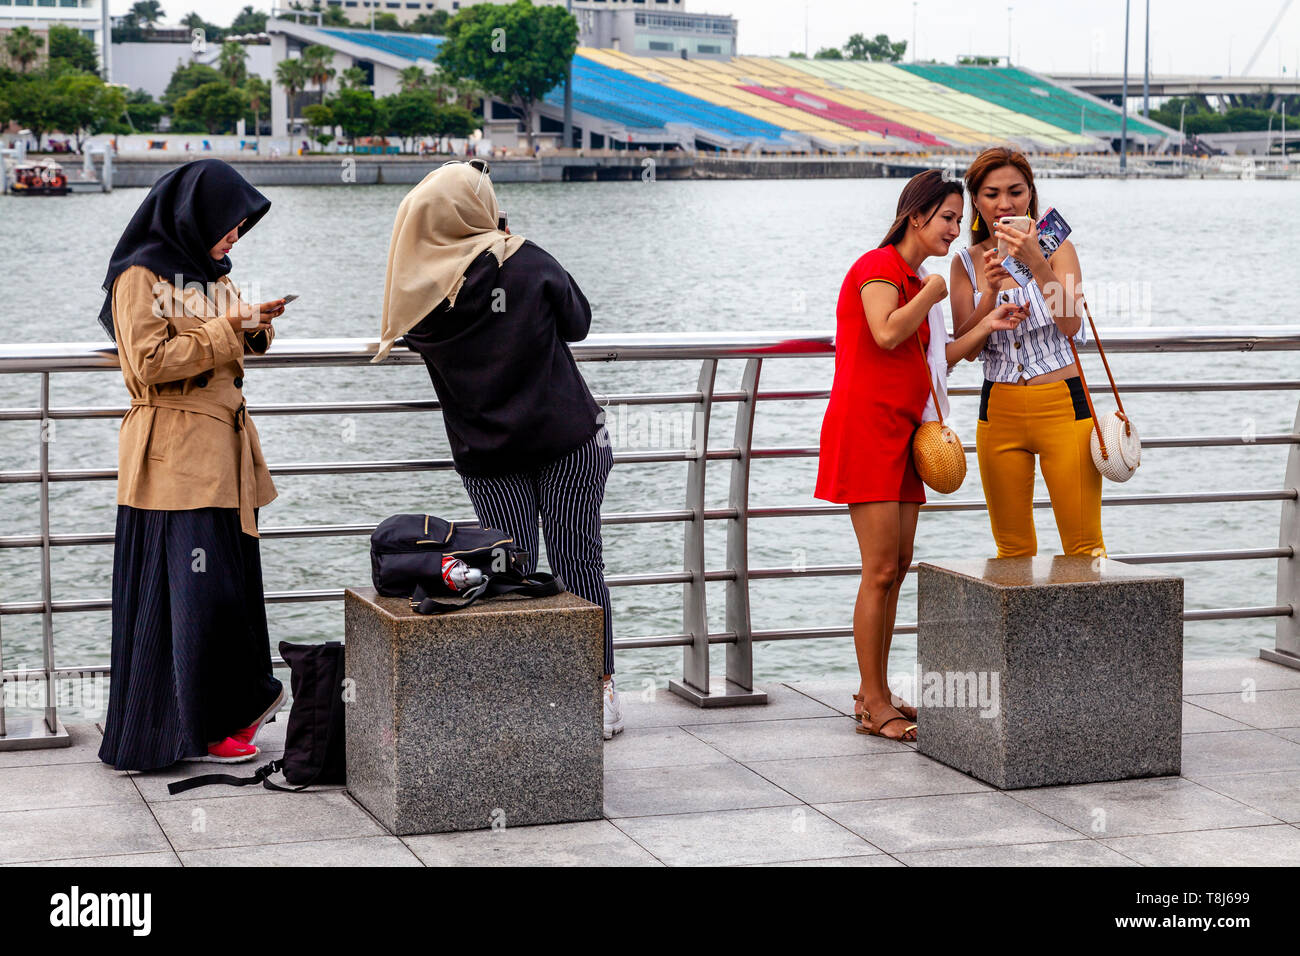 Female Tourists Looking At Their Camera Phones, Singapore, South East Asia - Stock Image